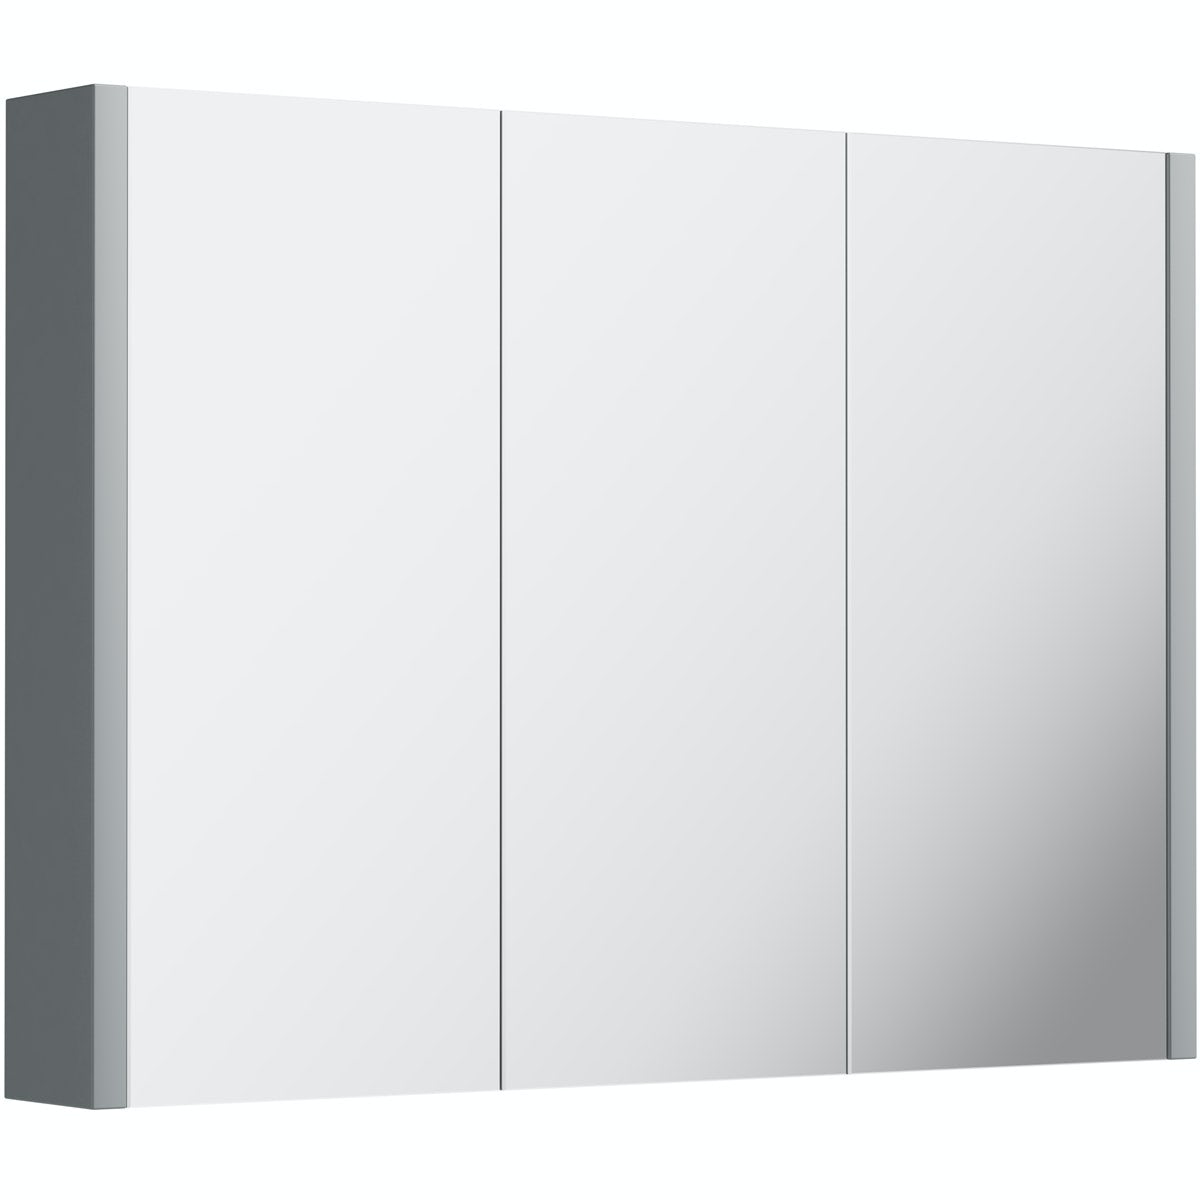 Orchard Derwent grey 3 3oor mirror cabinet 900mm